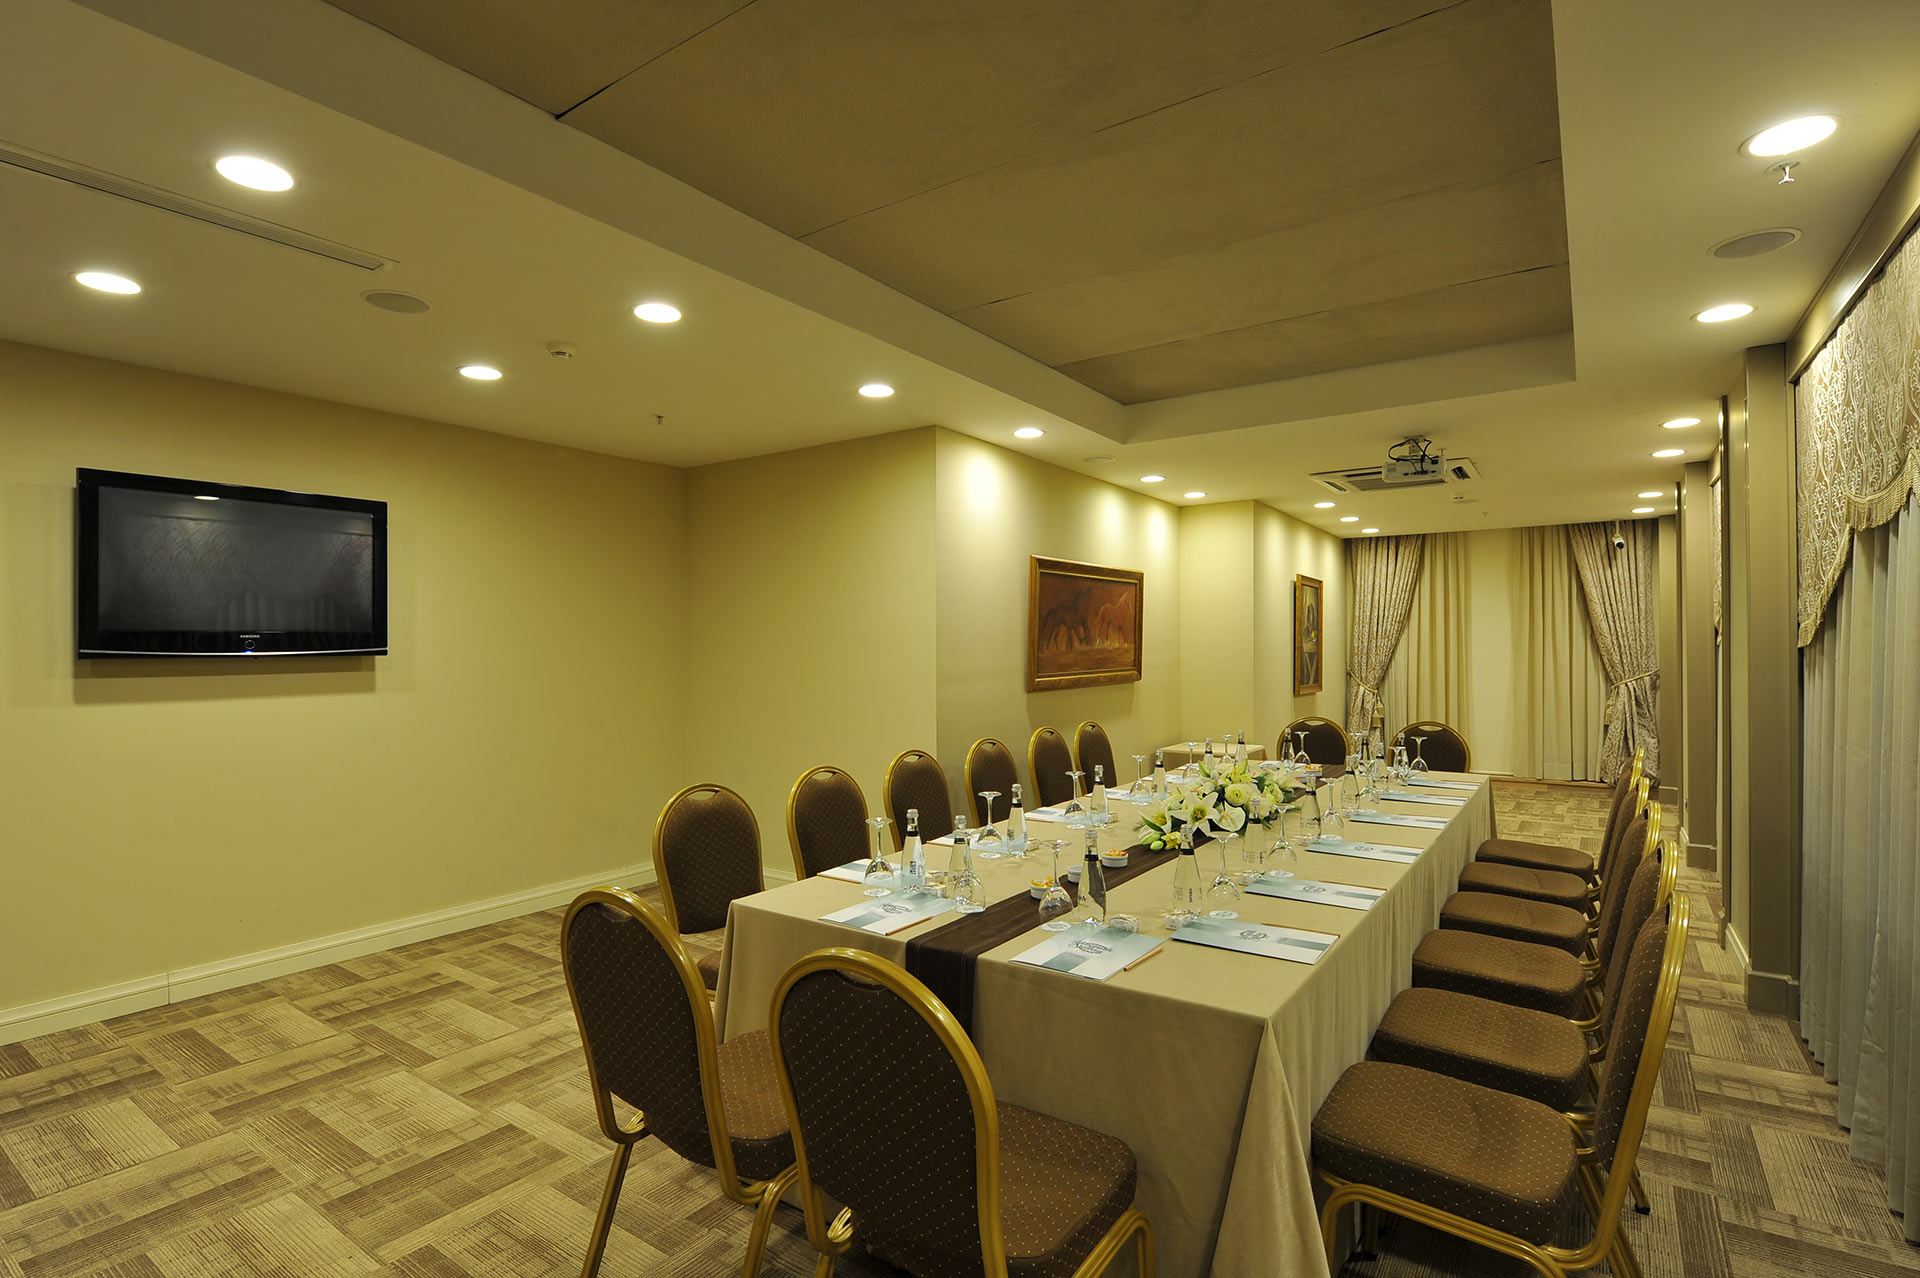 HOTEL YASMAK SULTAN ISTANBUL - Topkapi meeting room in U shape